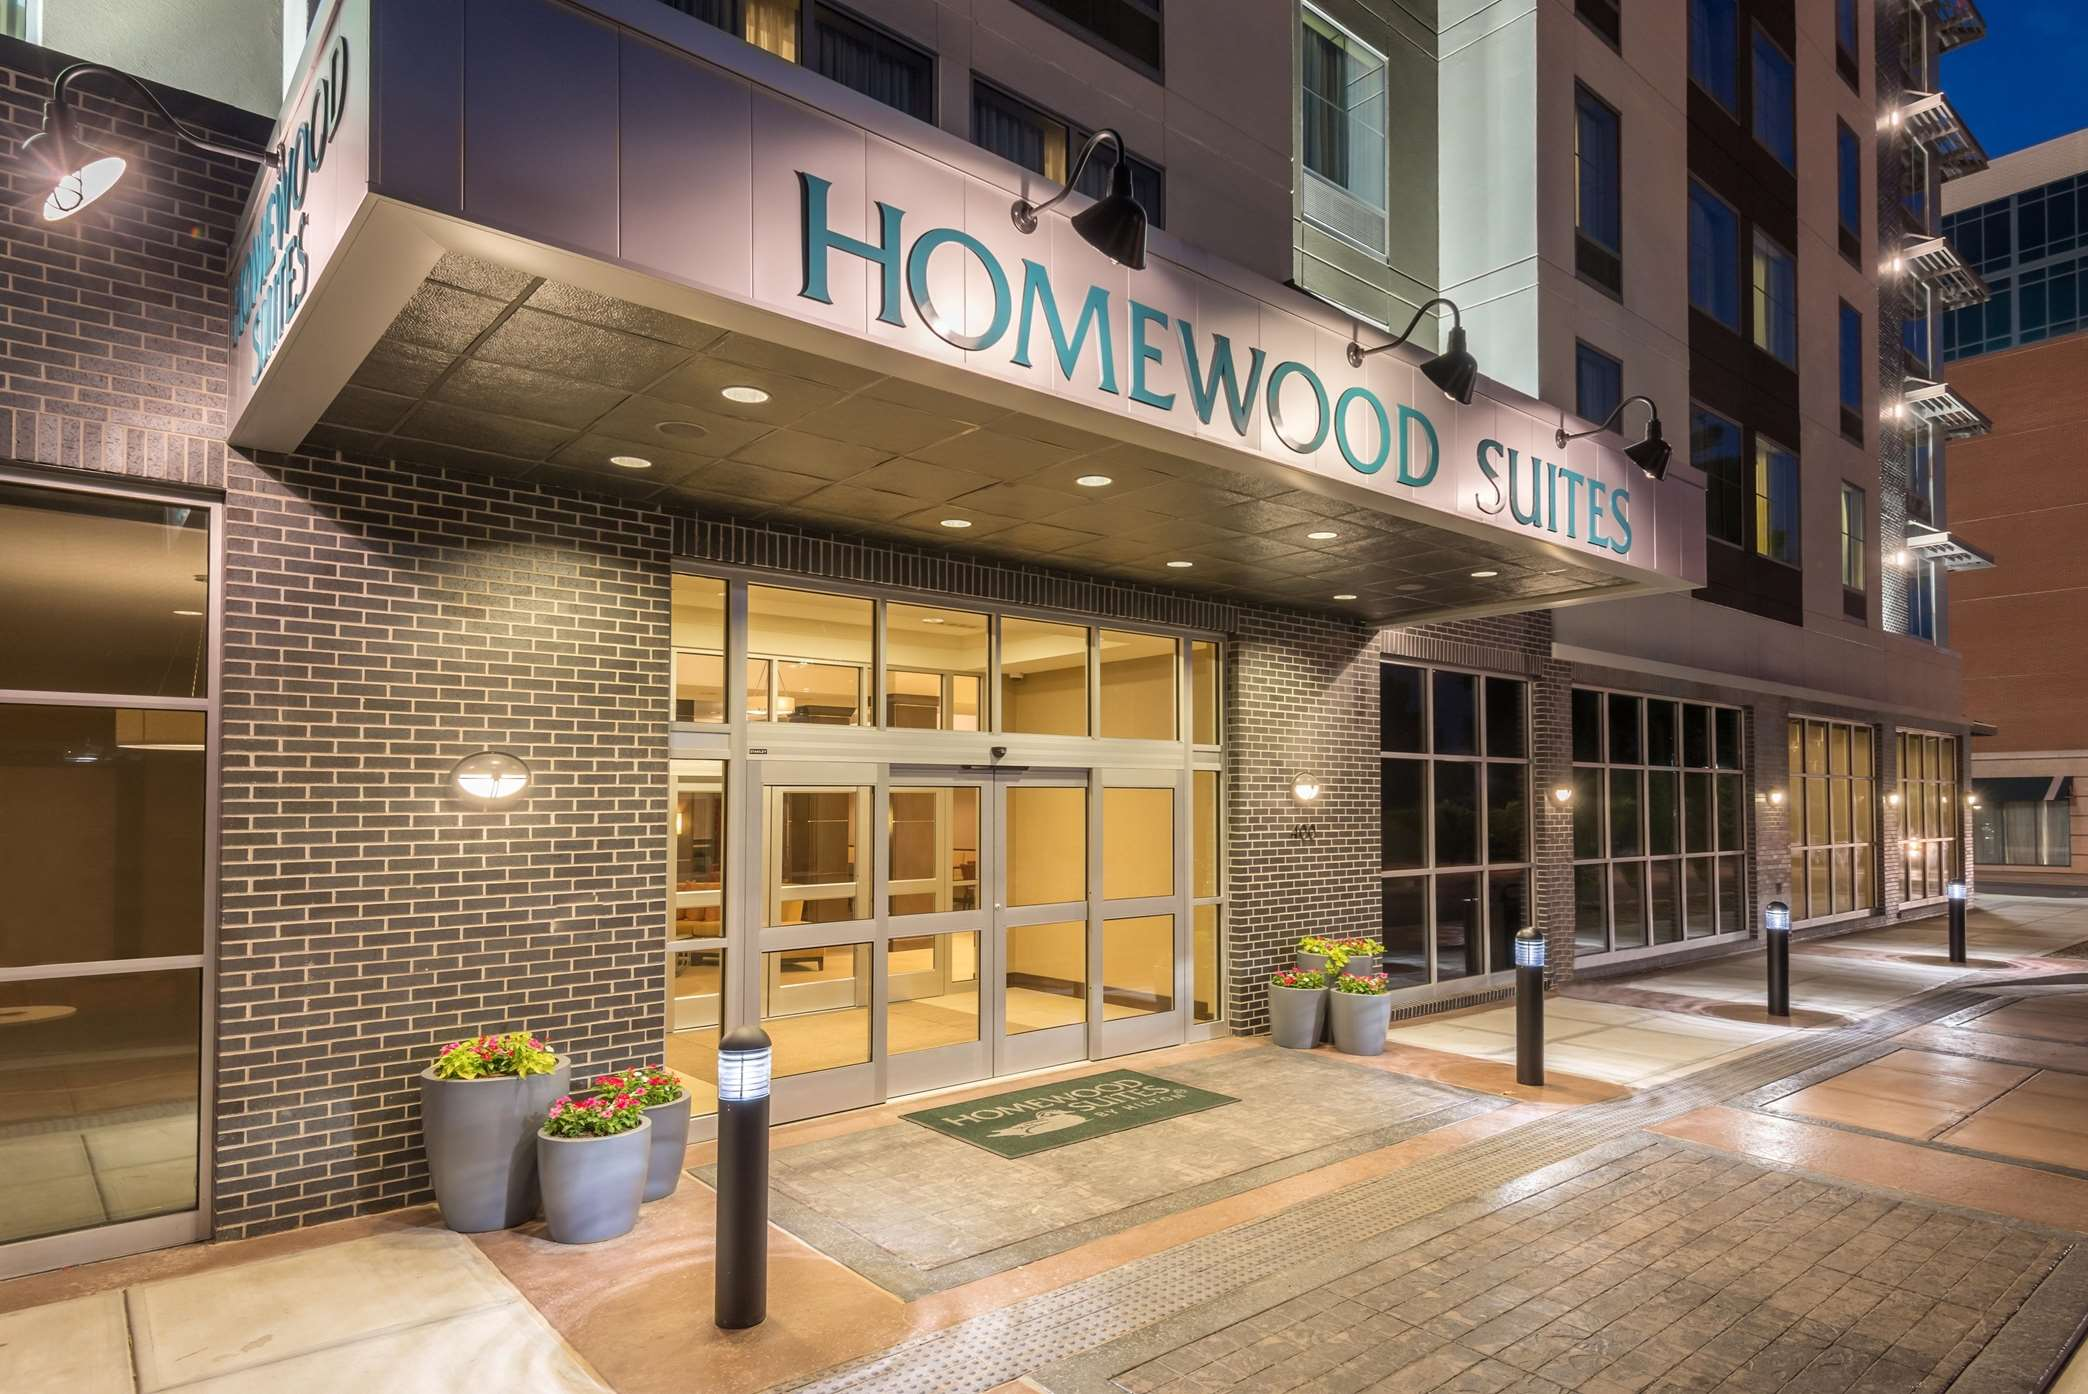 Homewood Suites by Hilton Little Rock Downtown image 25